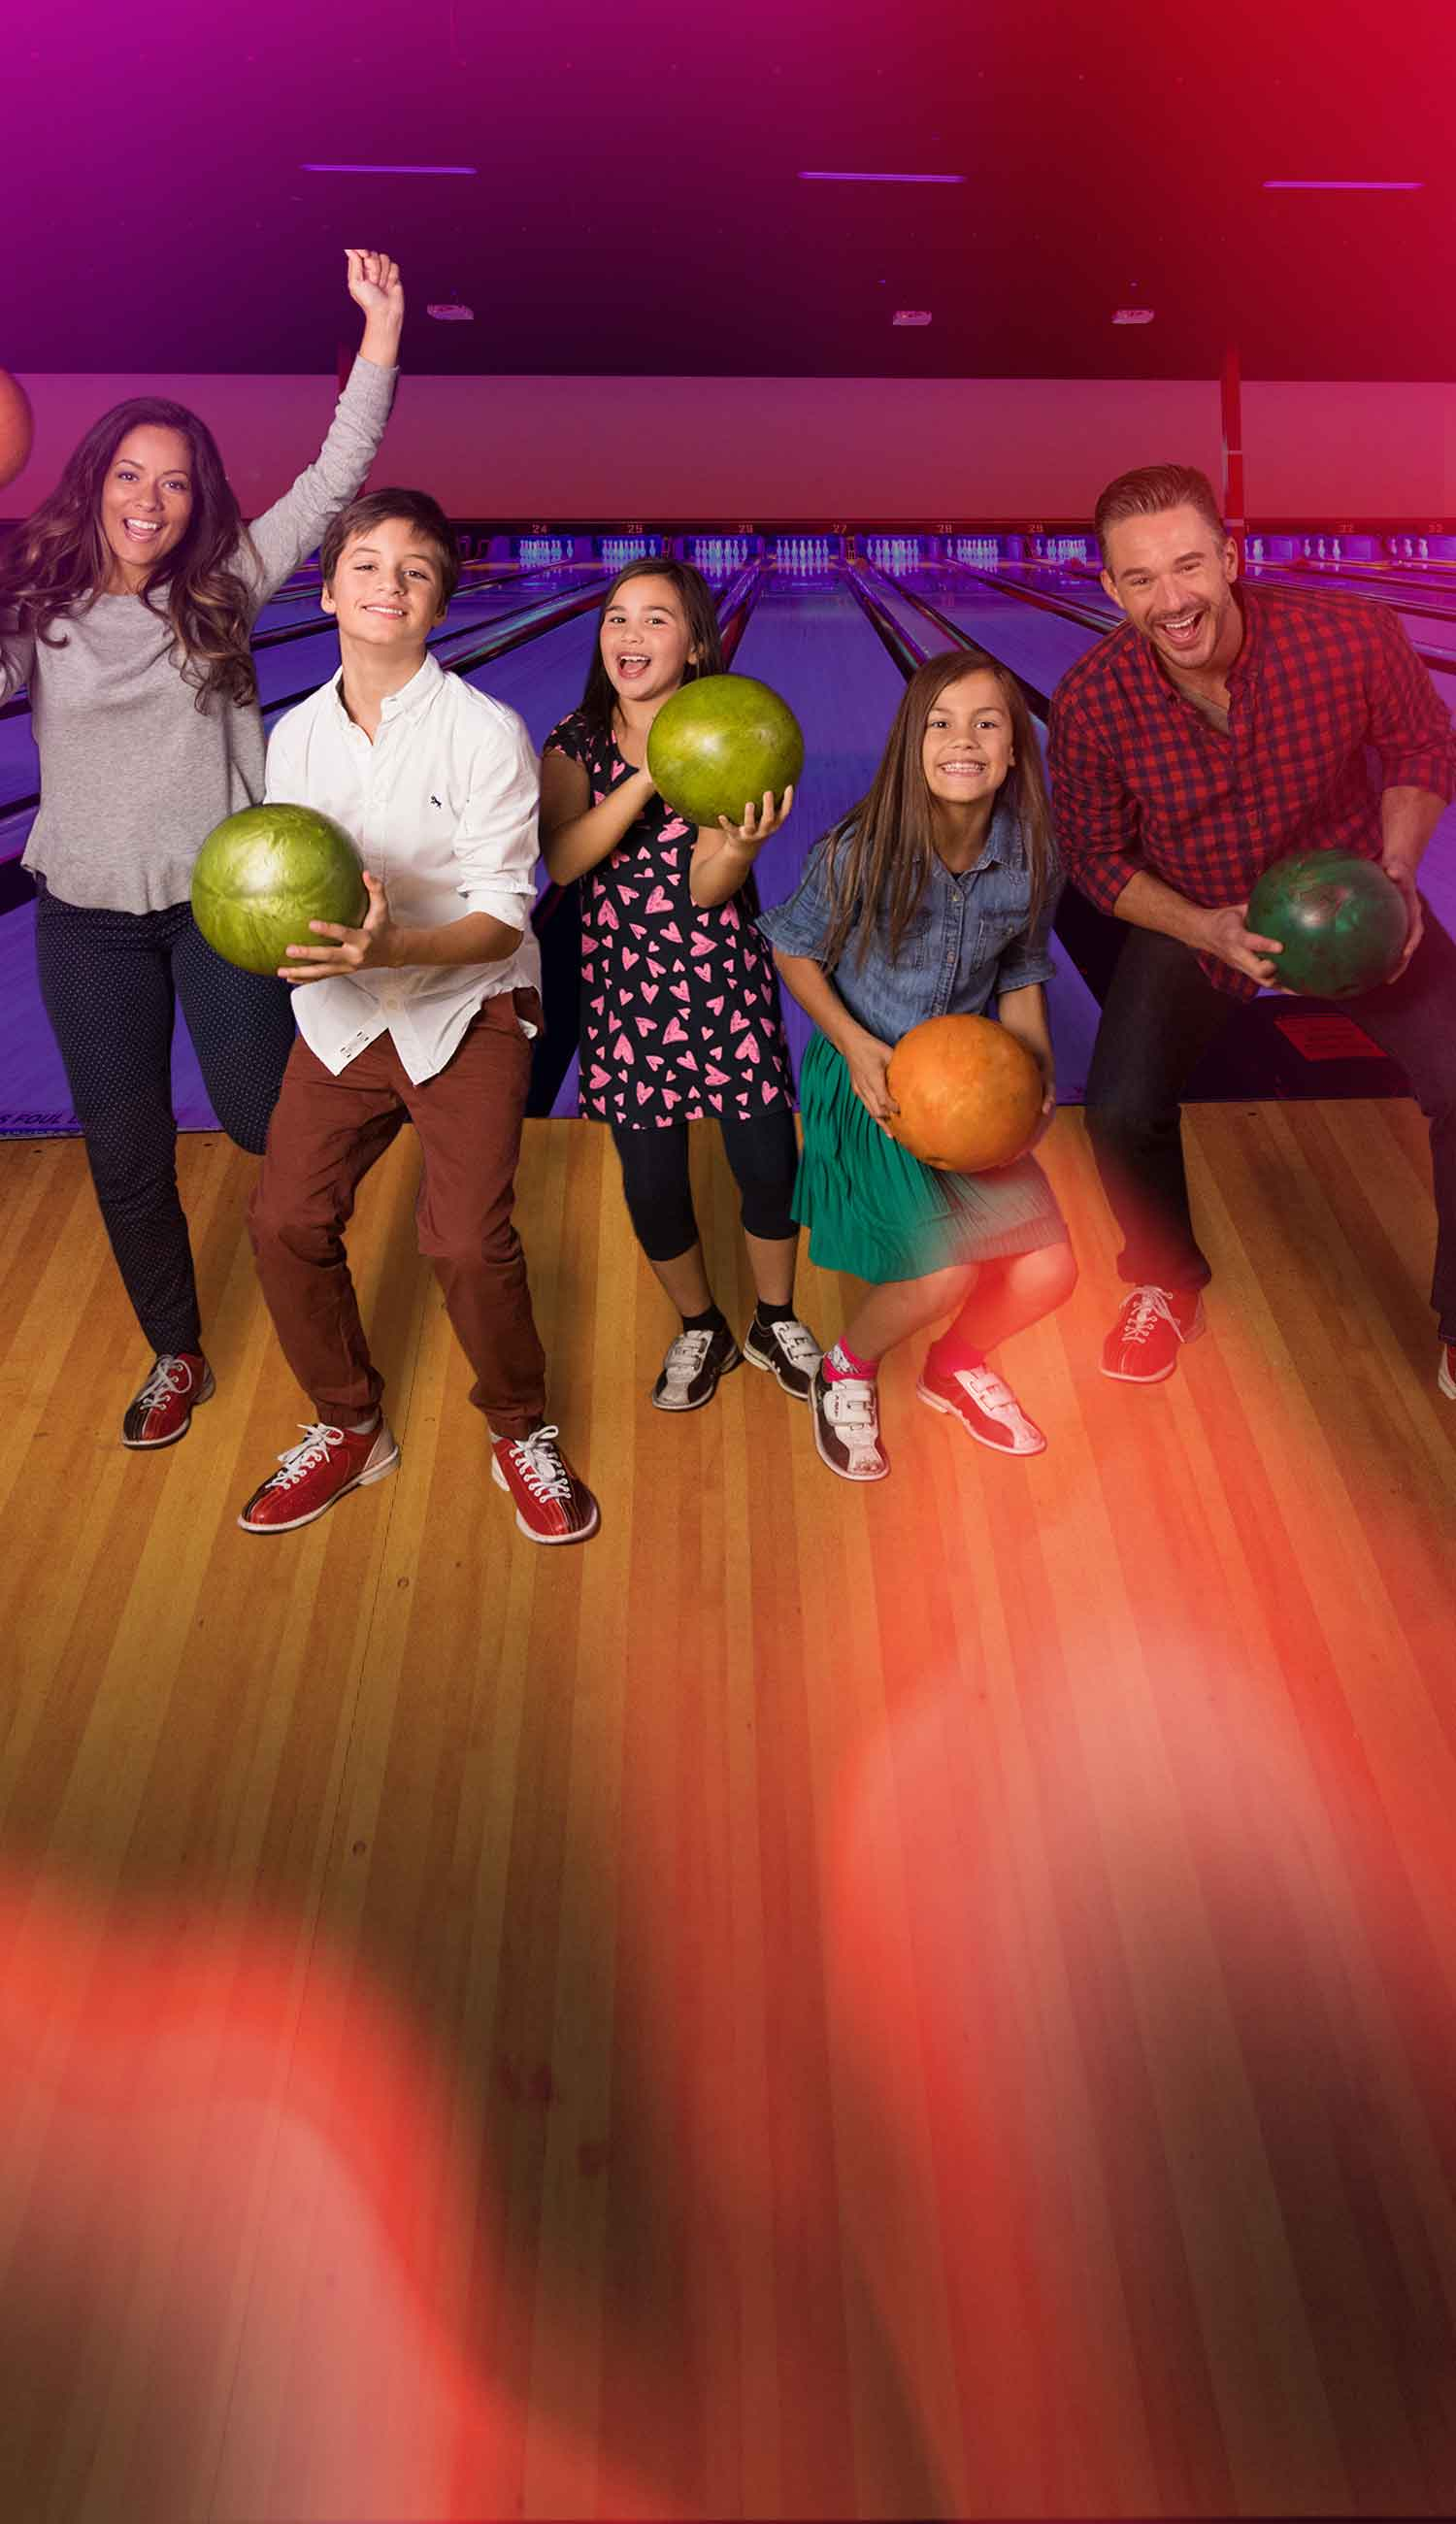 Family on the lanes holding bowling balls